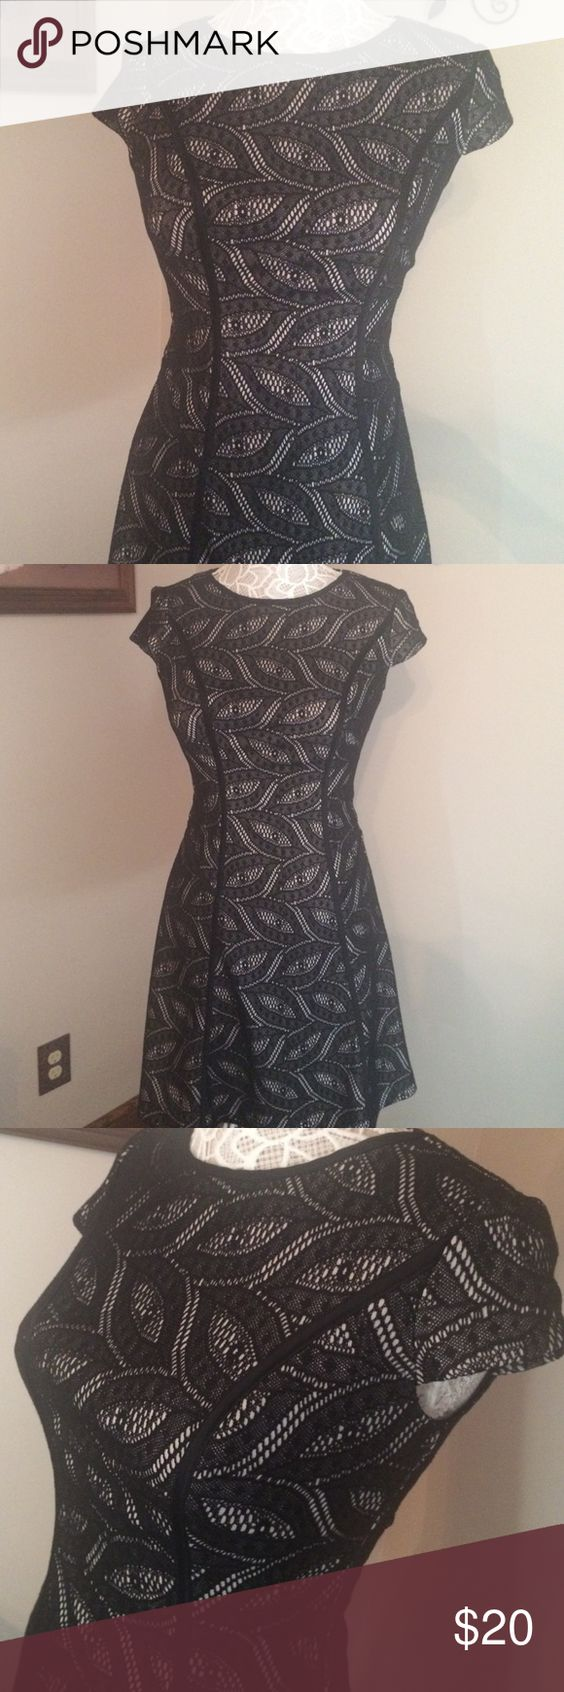 New York and company dress Lace overlay stretch fit & flare dress. Size Xs. Mannequin measurements are 28 waist. 36 chest. New York & Company Dresses